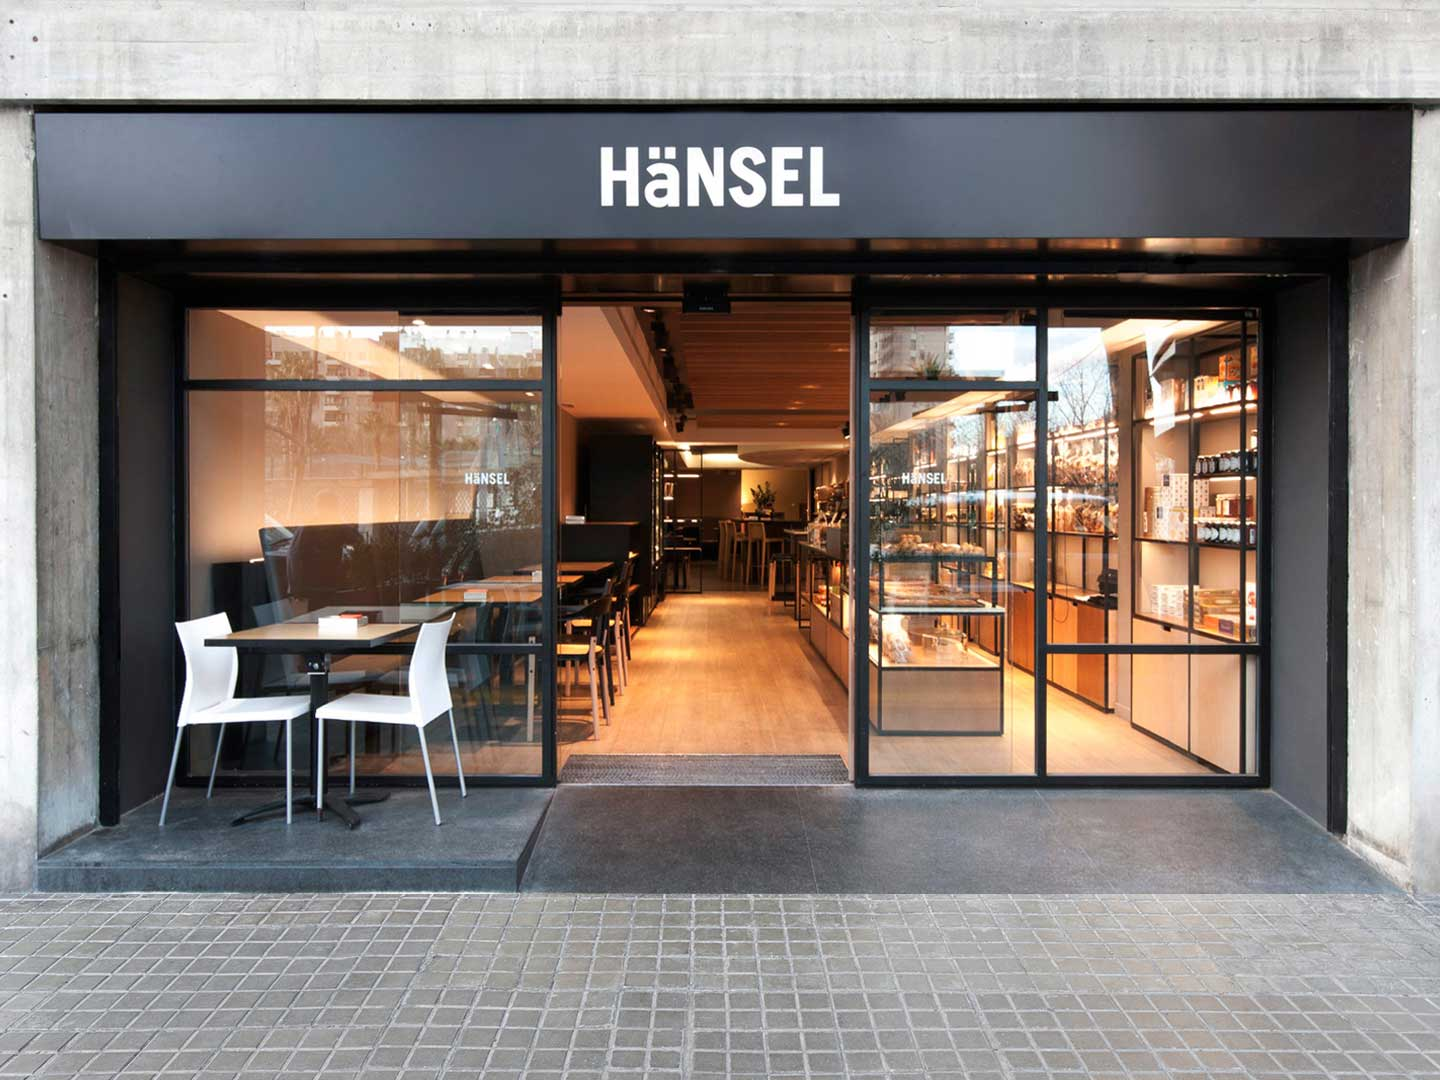 Hänsel cafe entrance